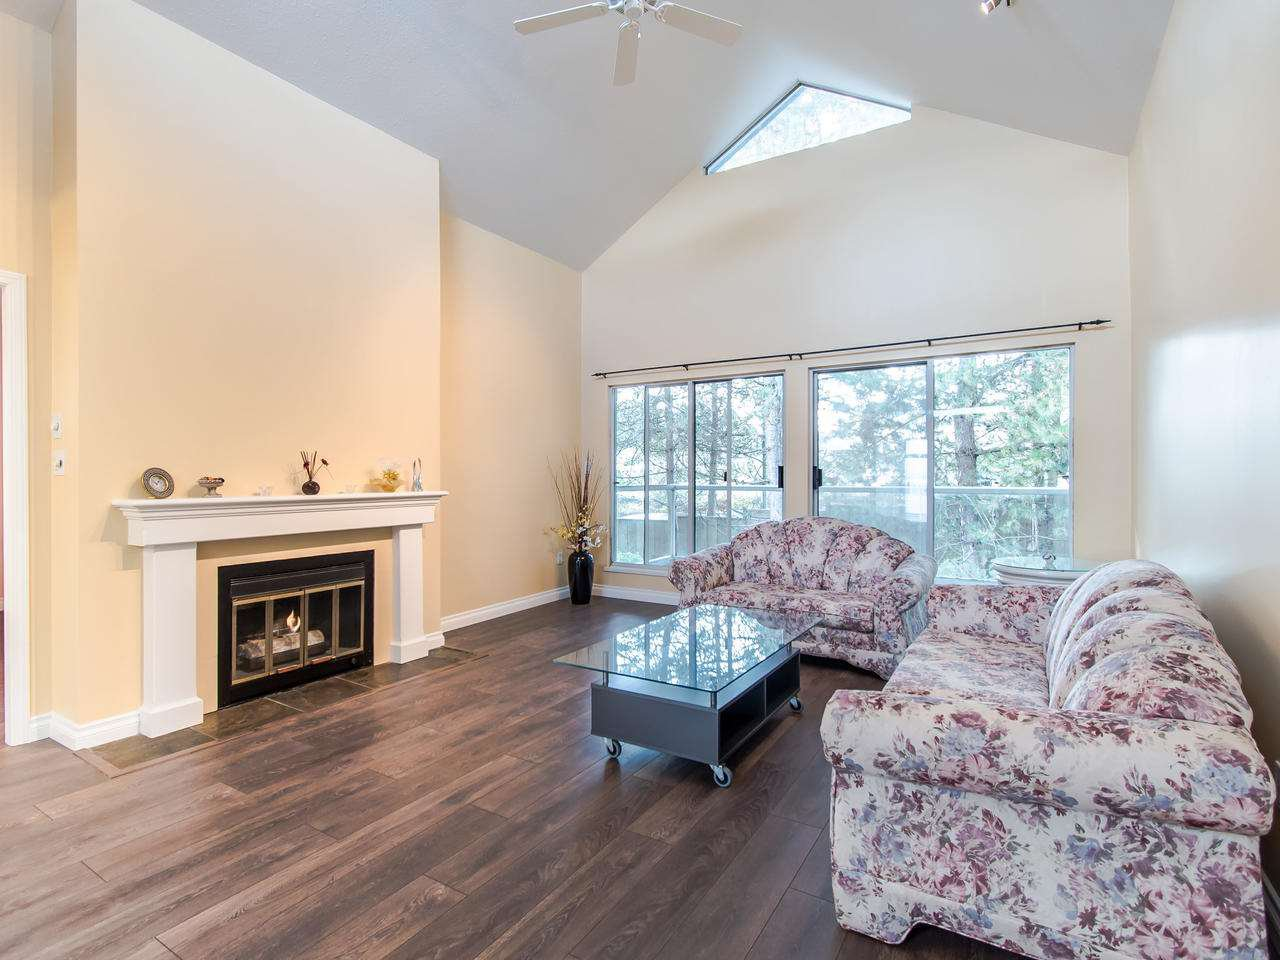 Main Photo: 404 2733 ATLIN PLACE in Coquitlam: Coquitlam East Condo for sale : MLS®# R2419896